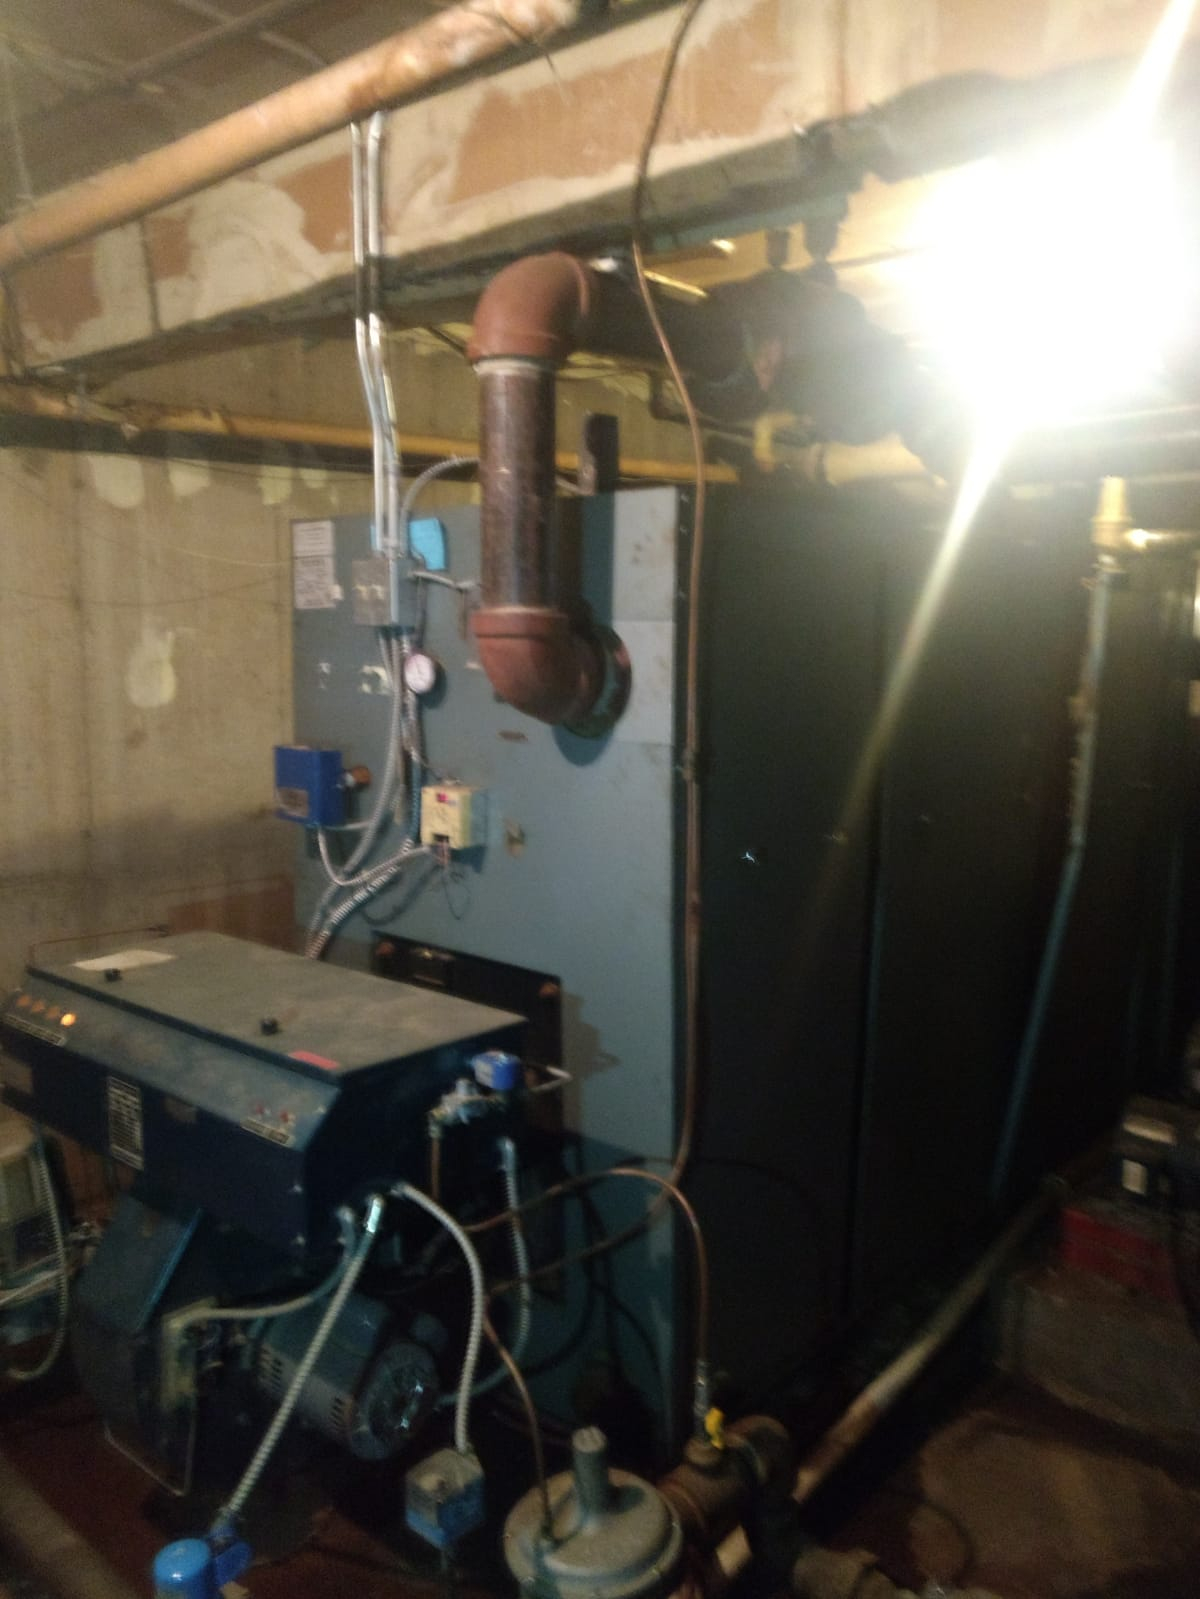 new commercial boiler needed  — Heating Help: The Wall